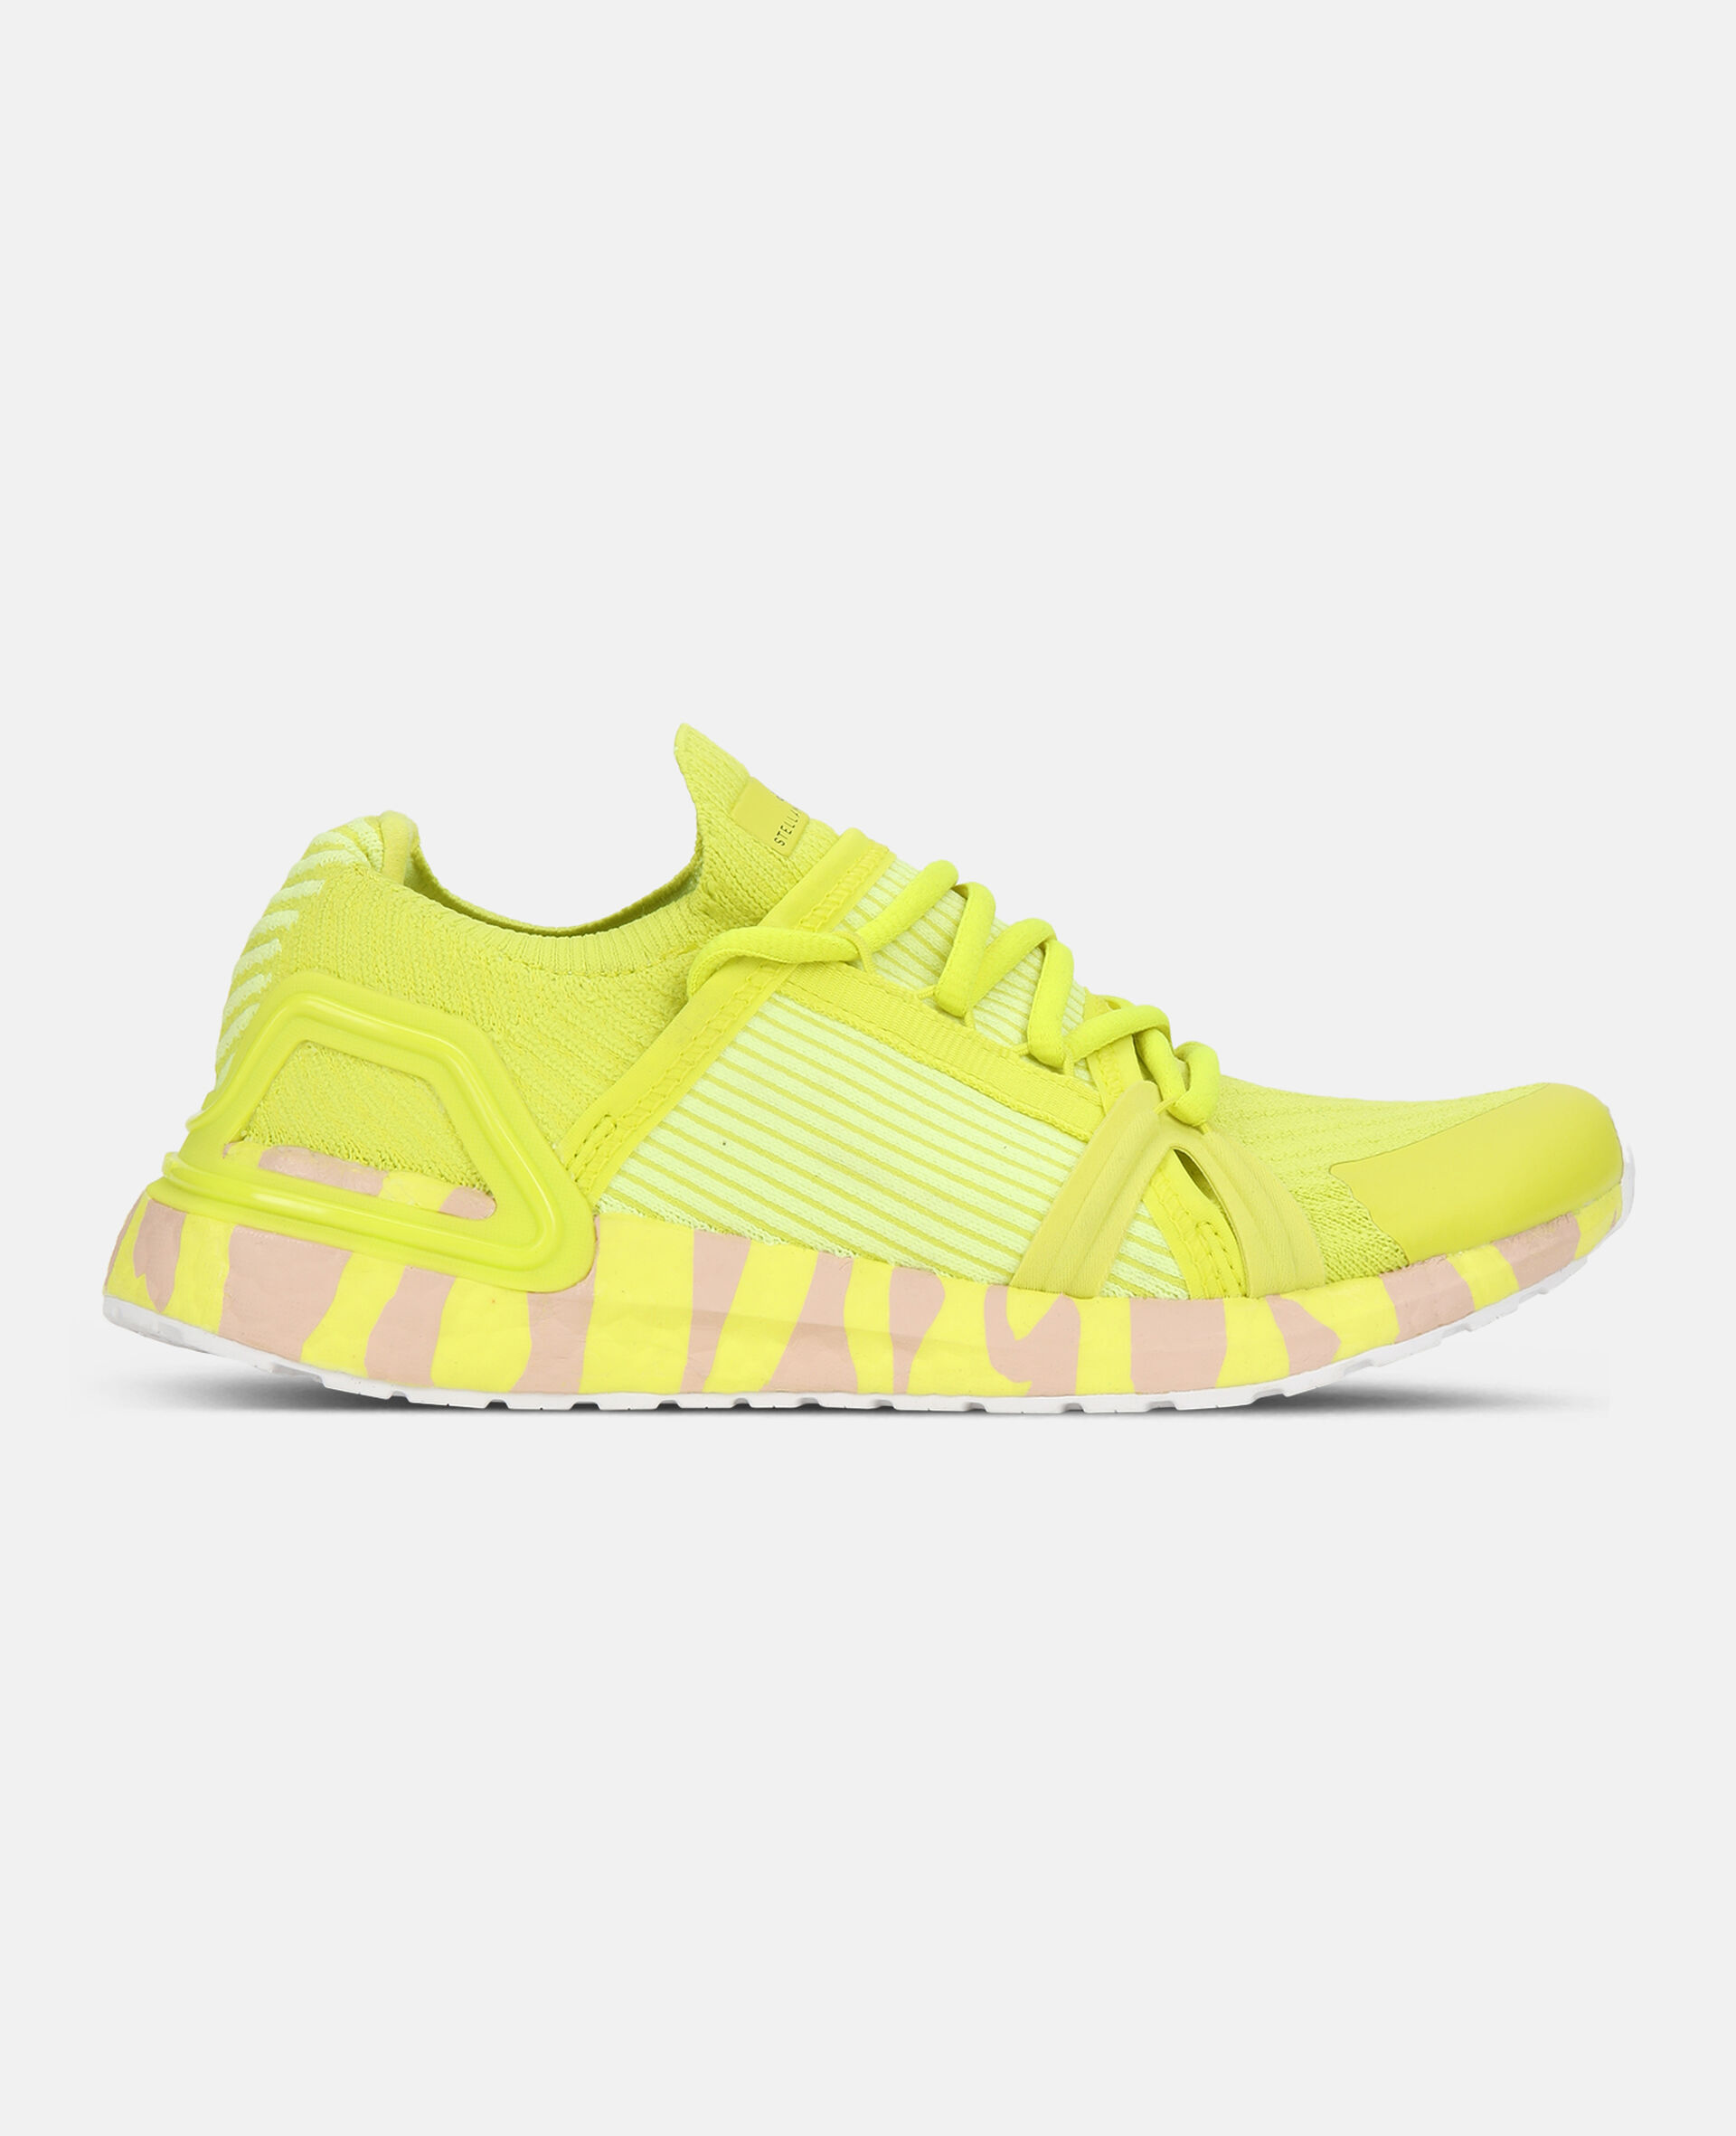 Yellow Ultraboost 20 Sneakers  -Yellow-large image number 0